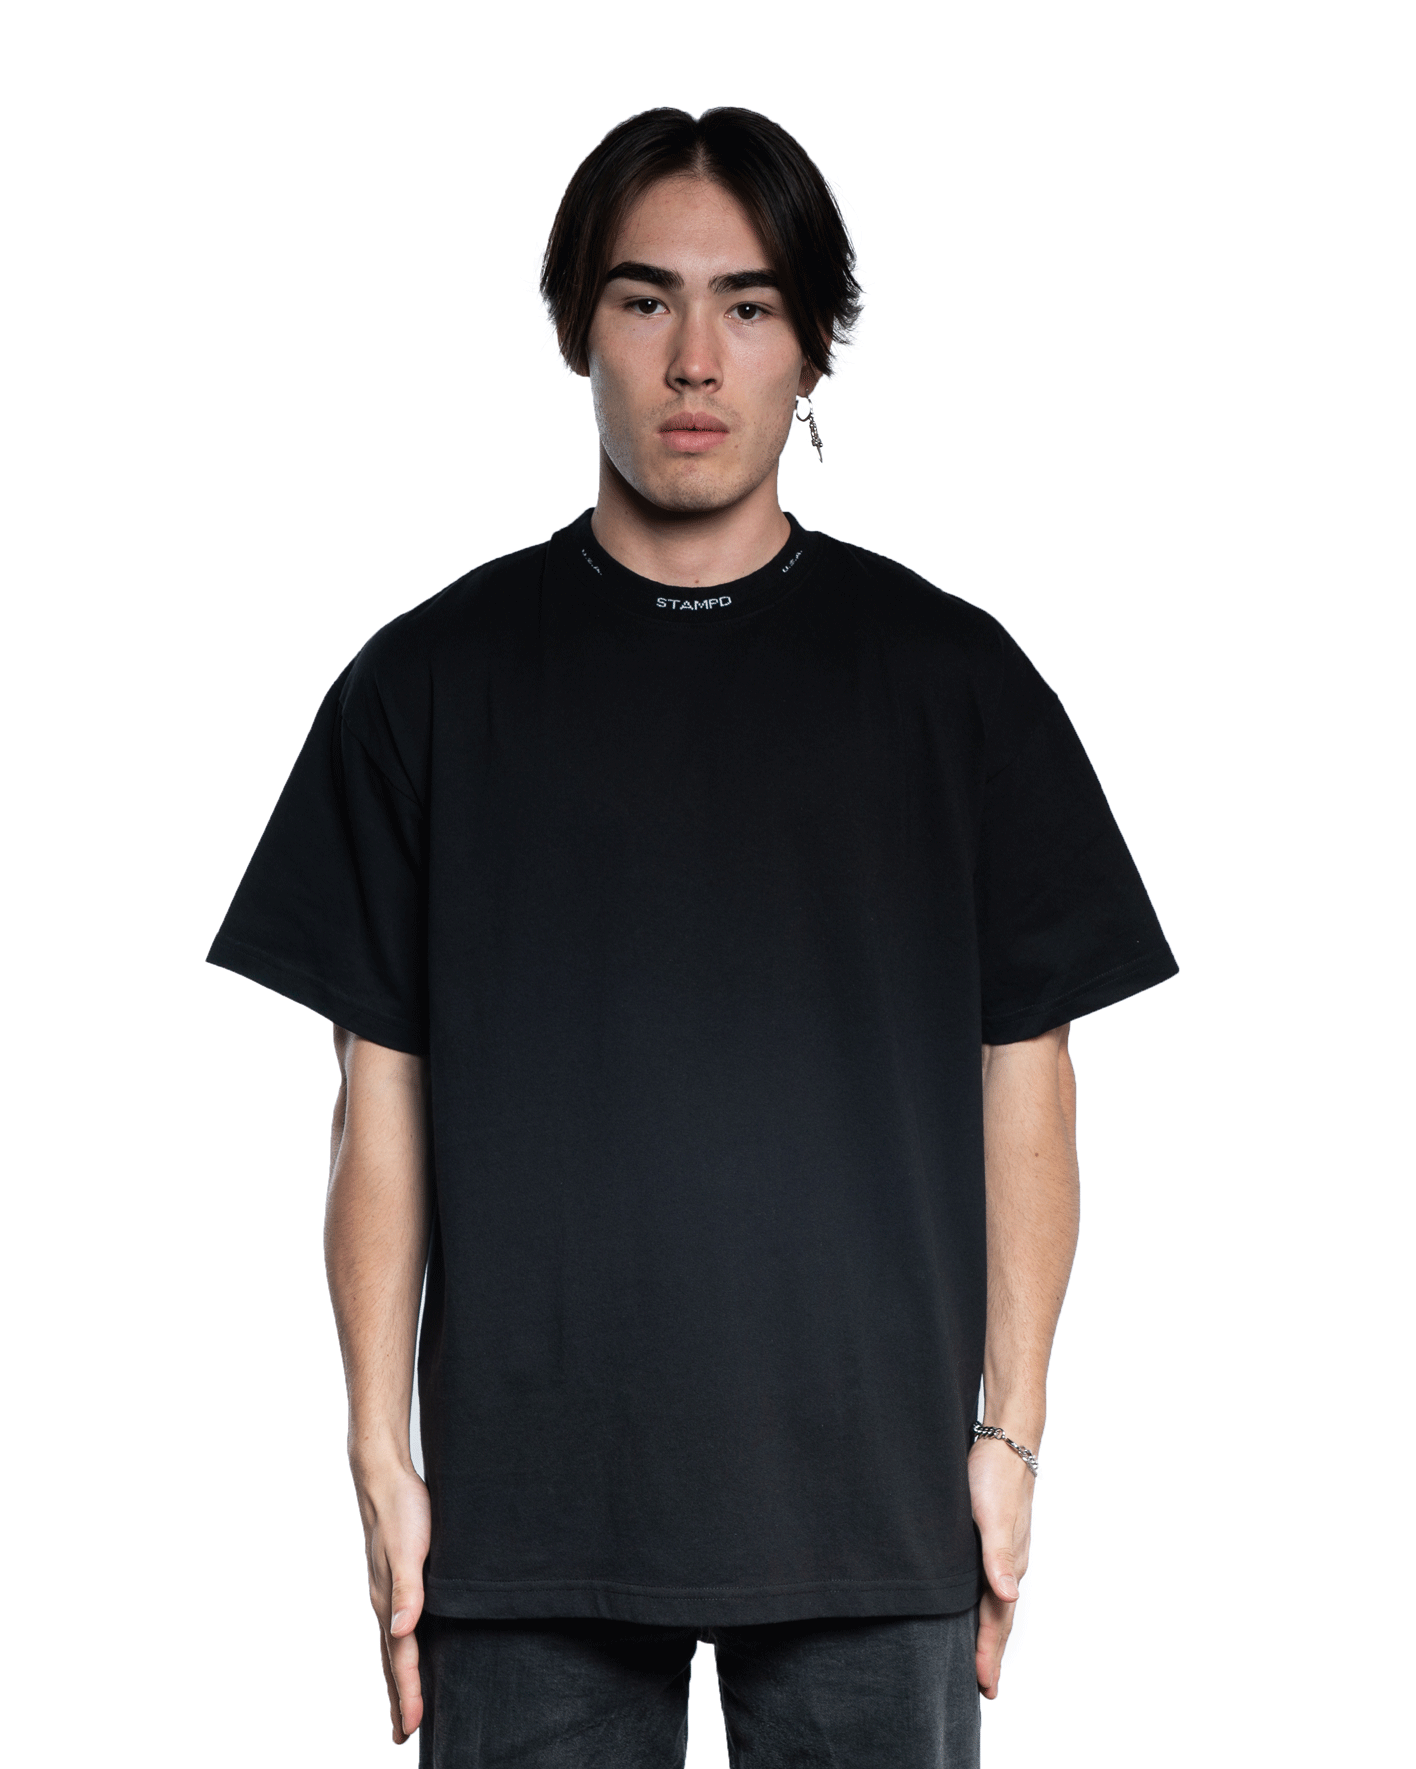 Stampd Gale Tee Black